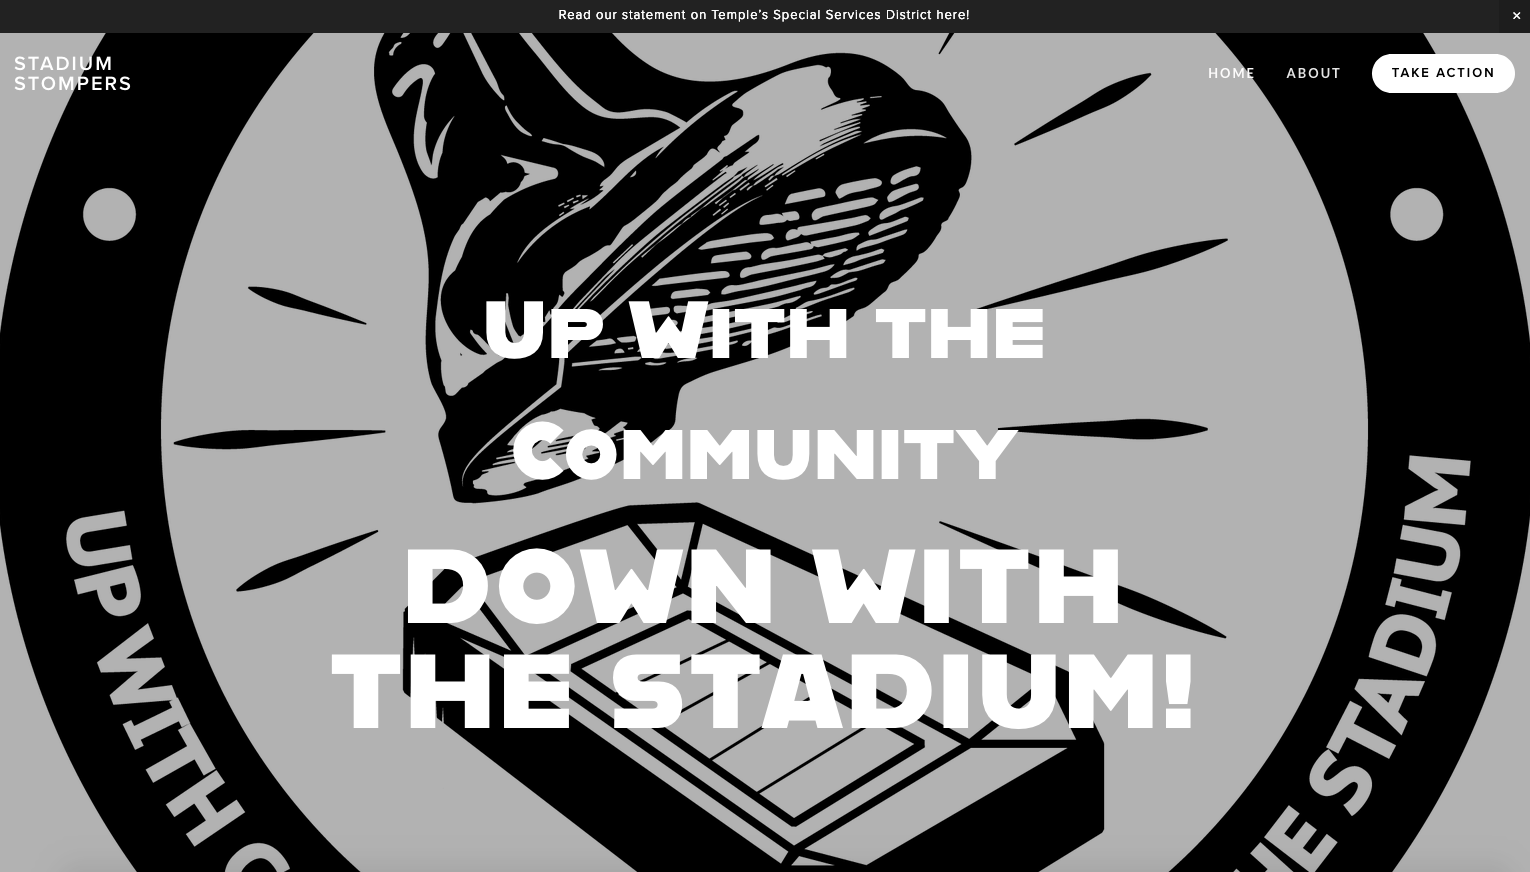 Click on the image to visit Stadium Stompers' website! (www.stadiumstompers.org)